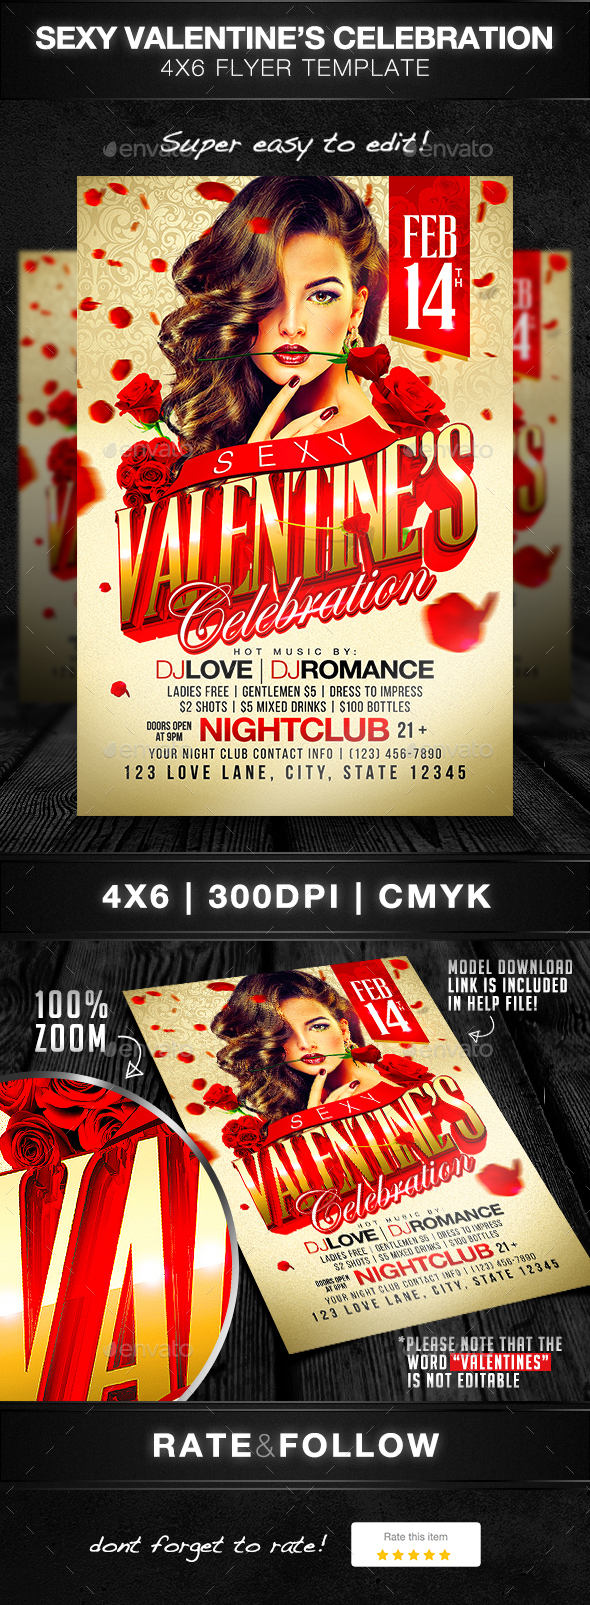 Sexy Valentine's Celebration Flyer Template - Holidays Events